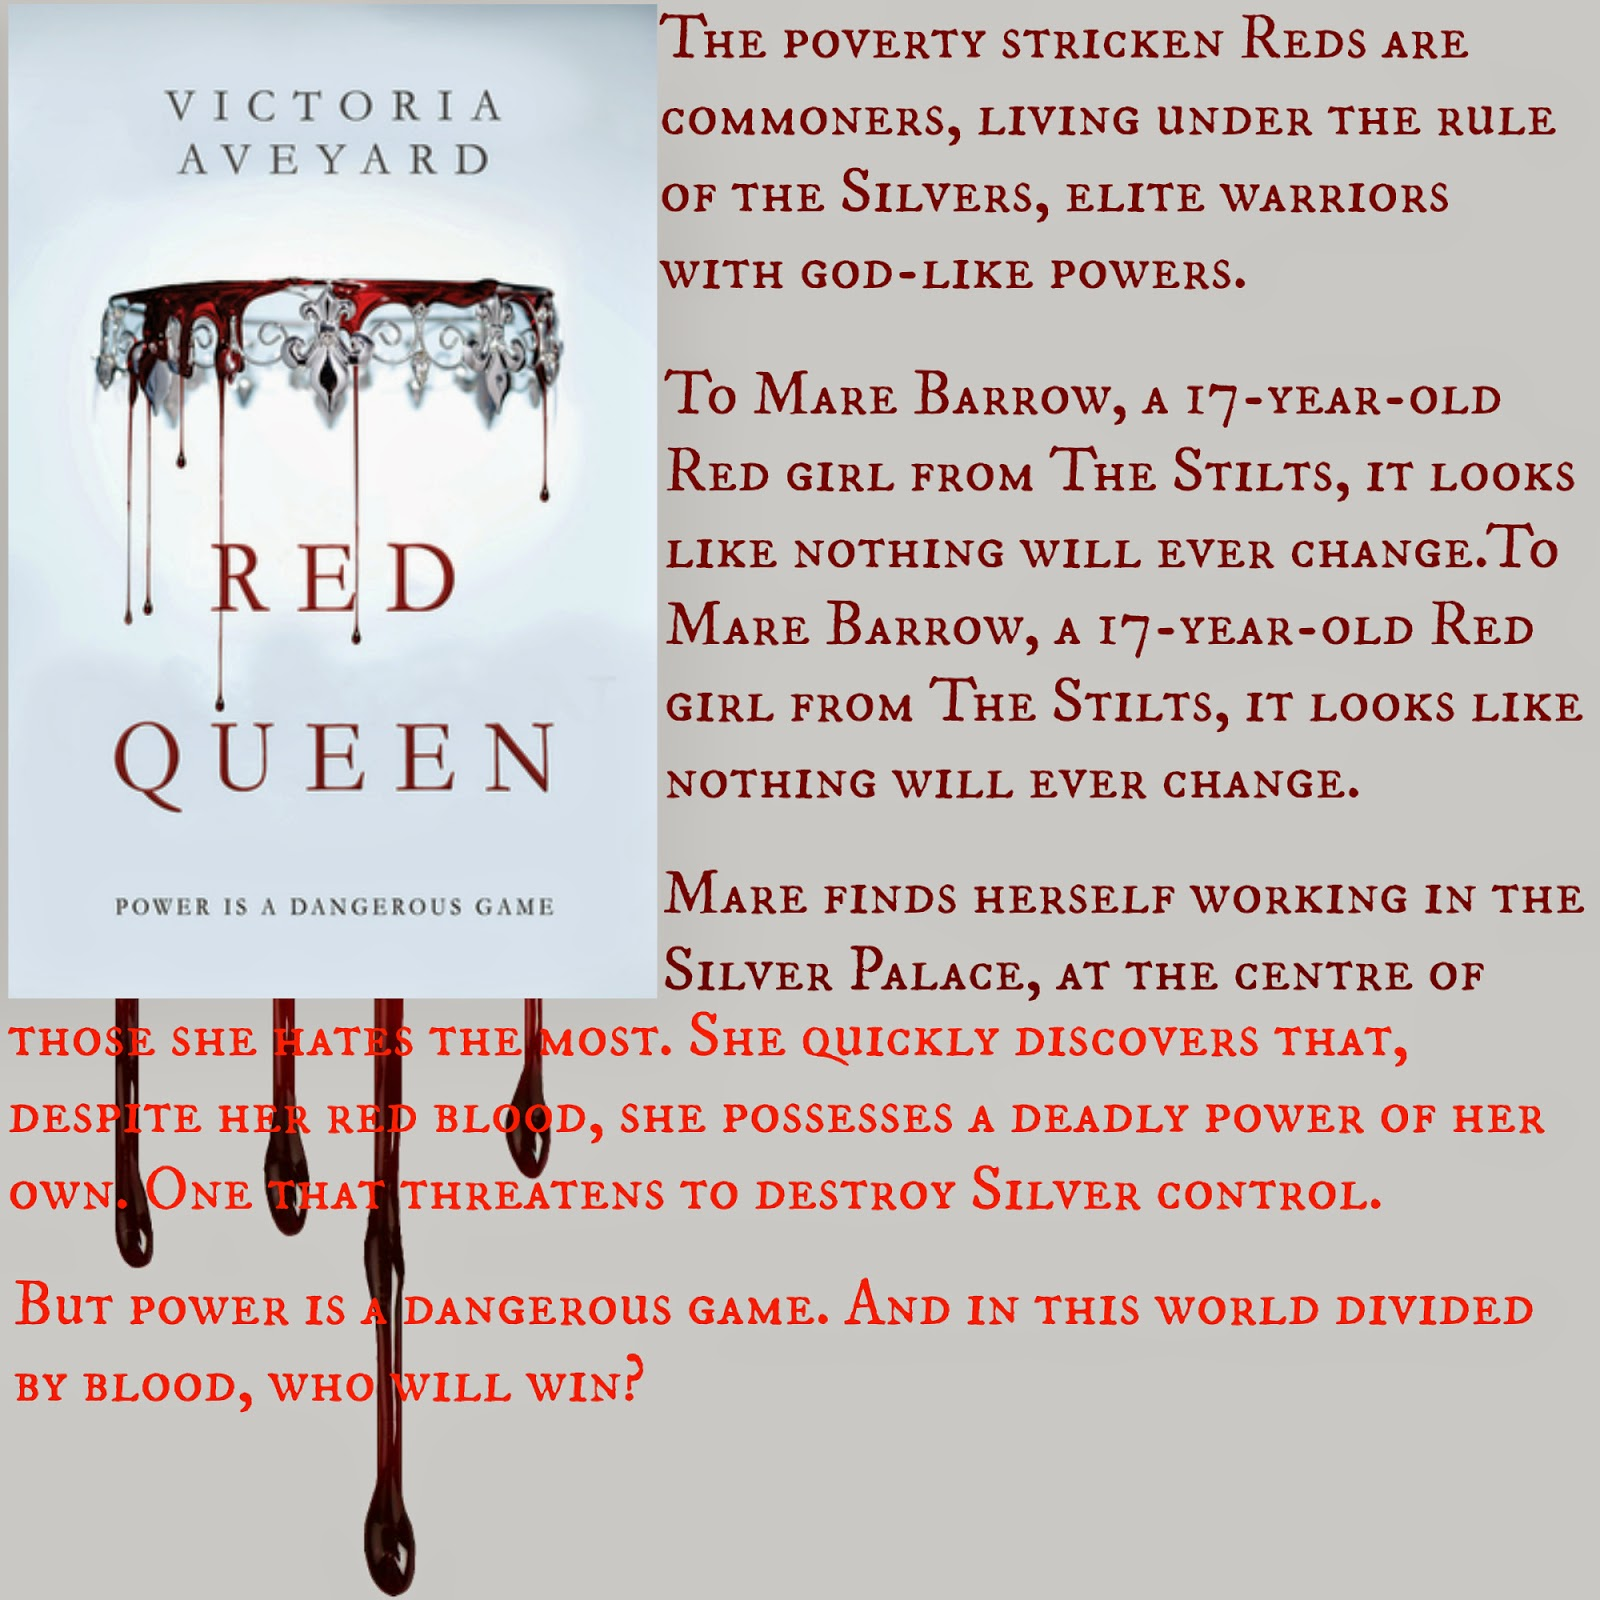 Speak Quotes And Page Numbers: Red Queen Victoria Aveyard Quotes. QuotesGram